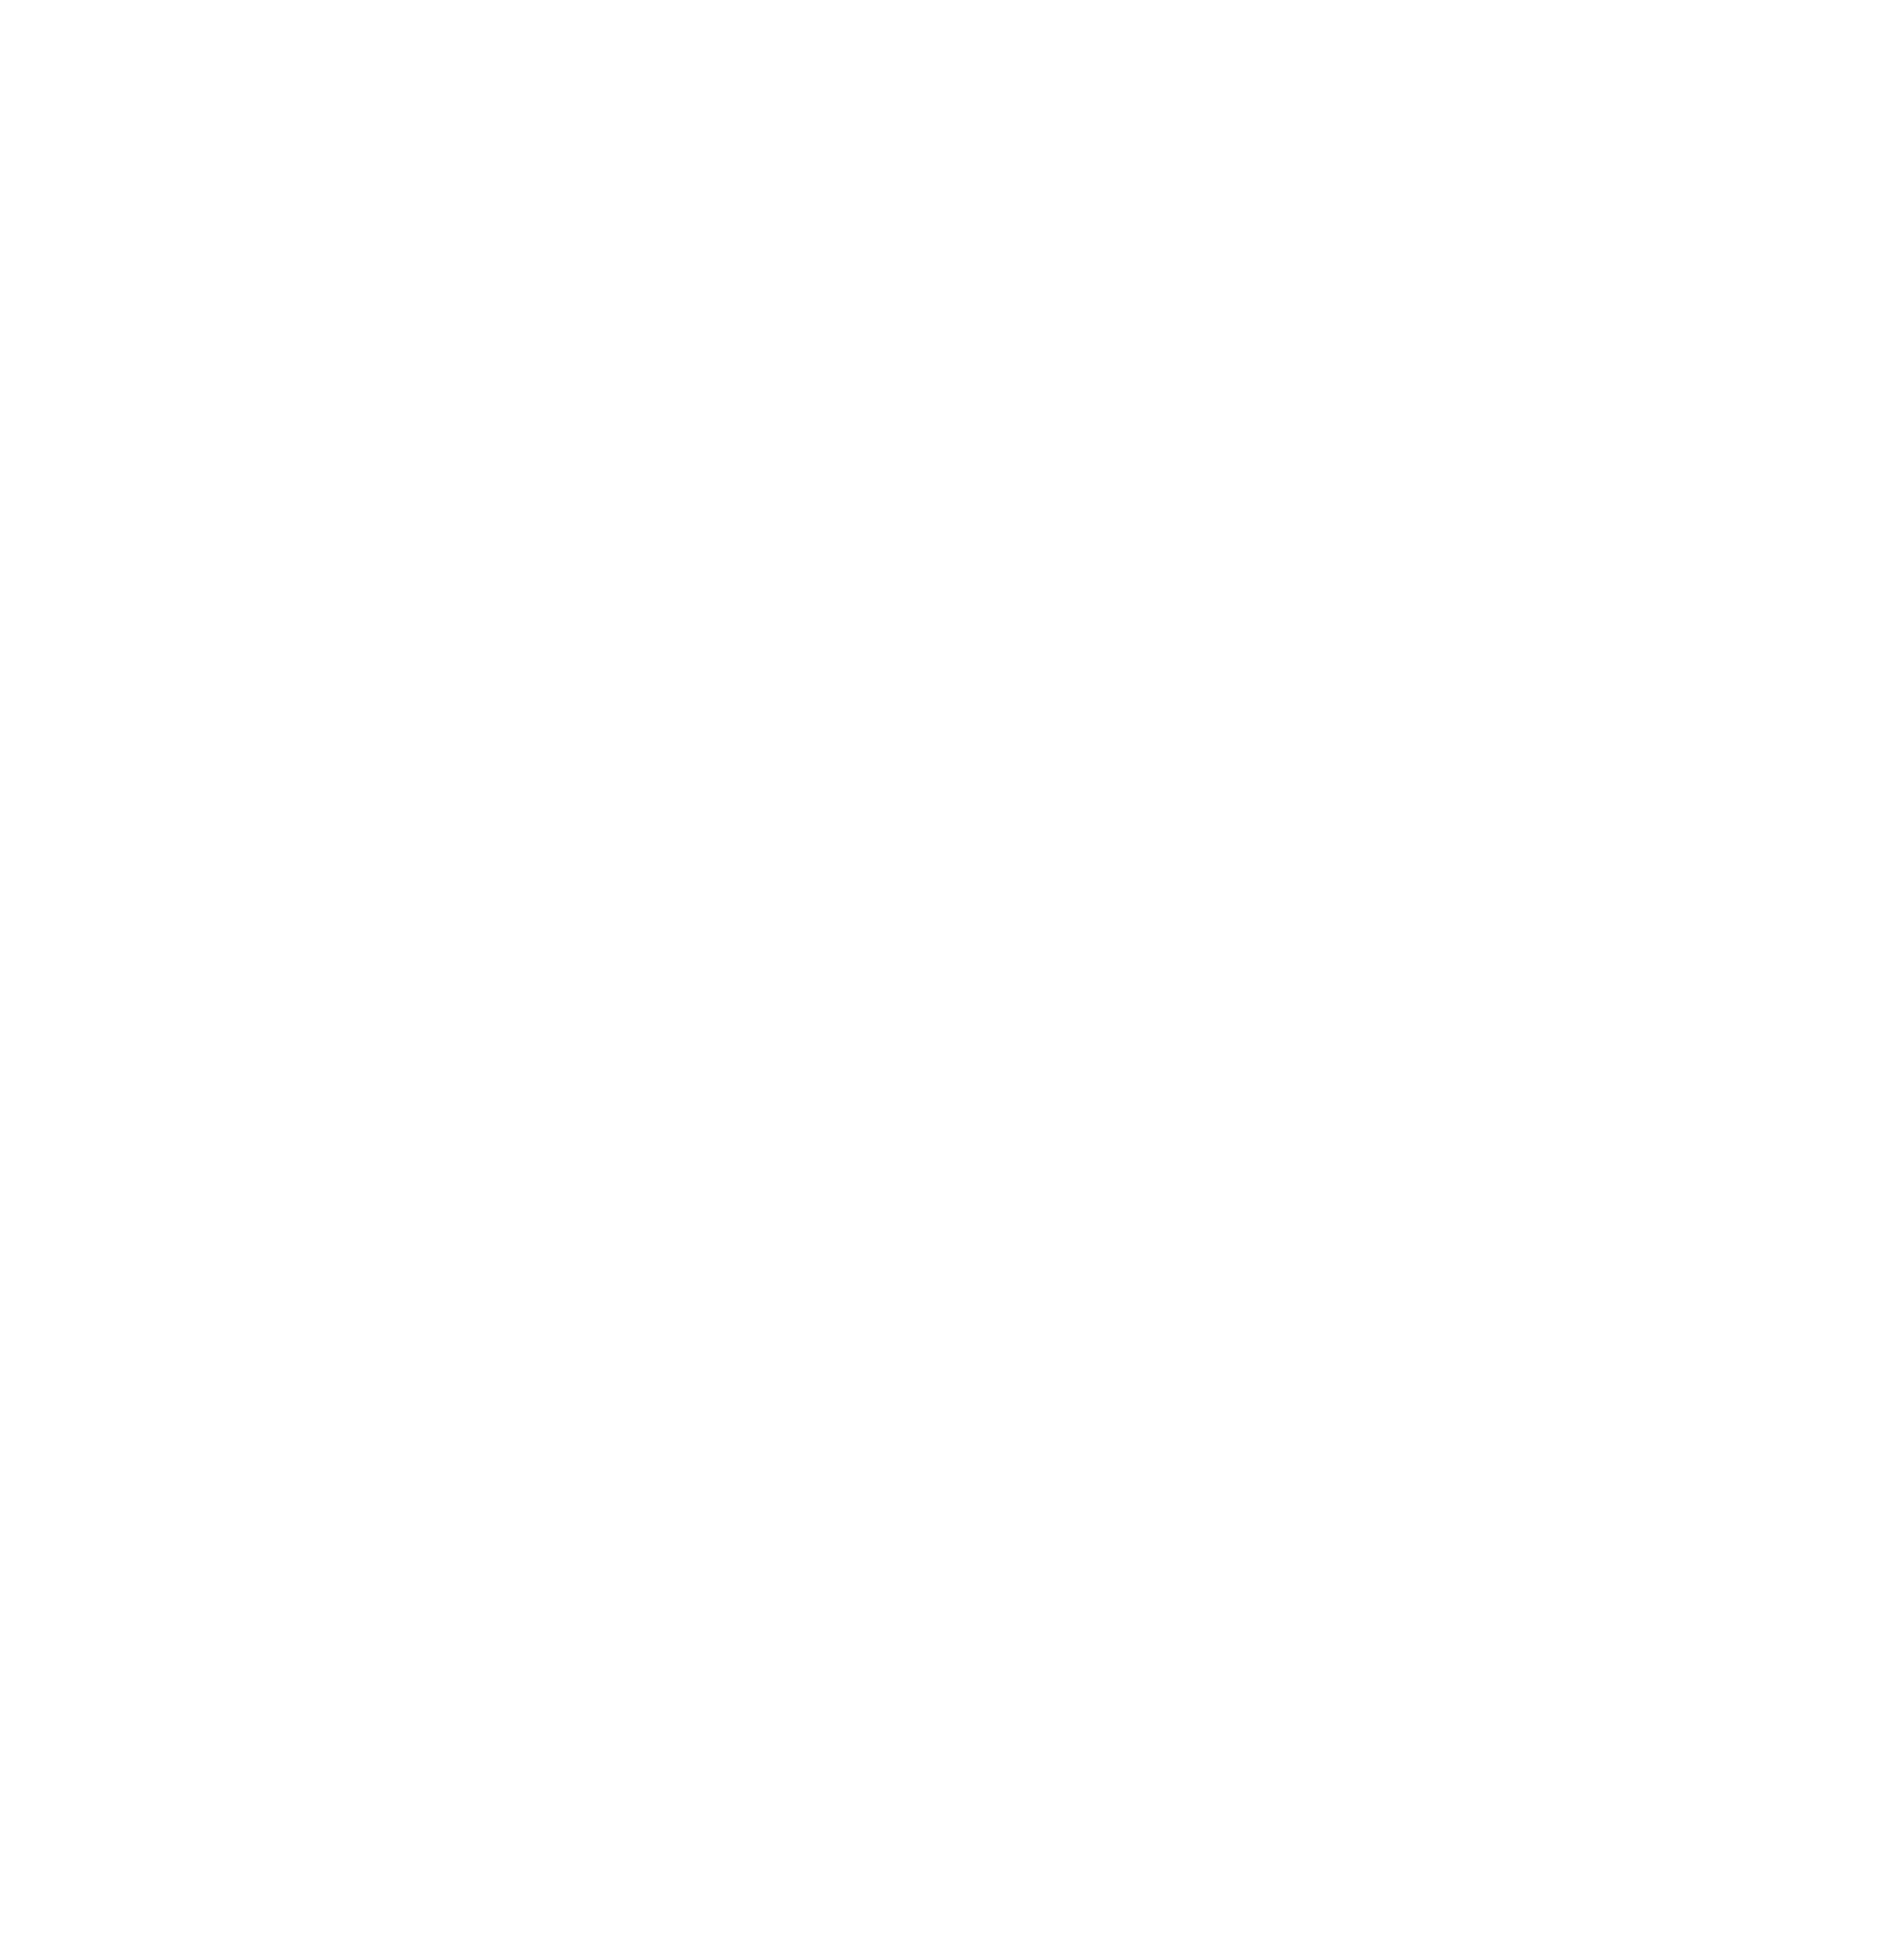 purple banana creative design blueprint